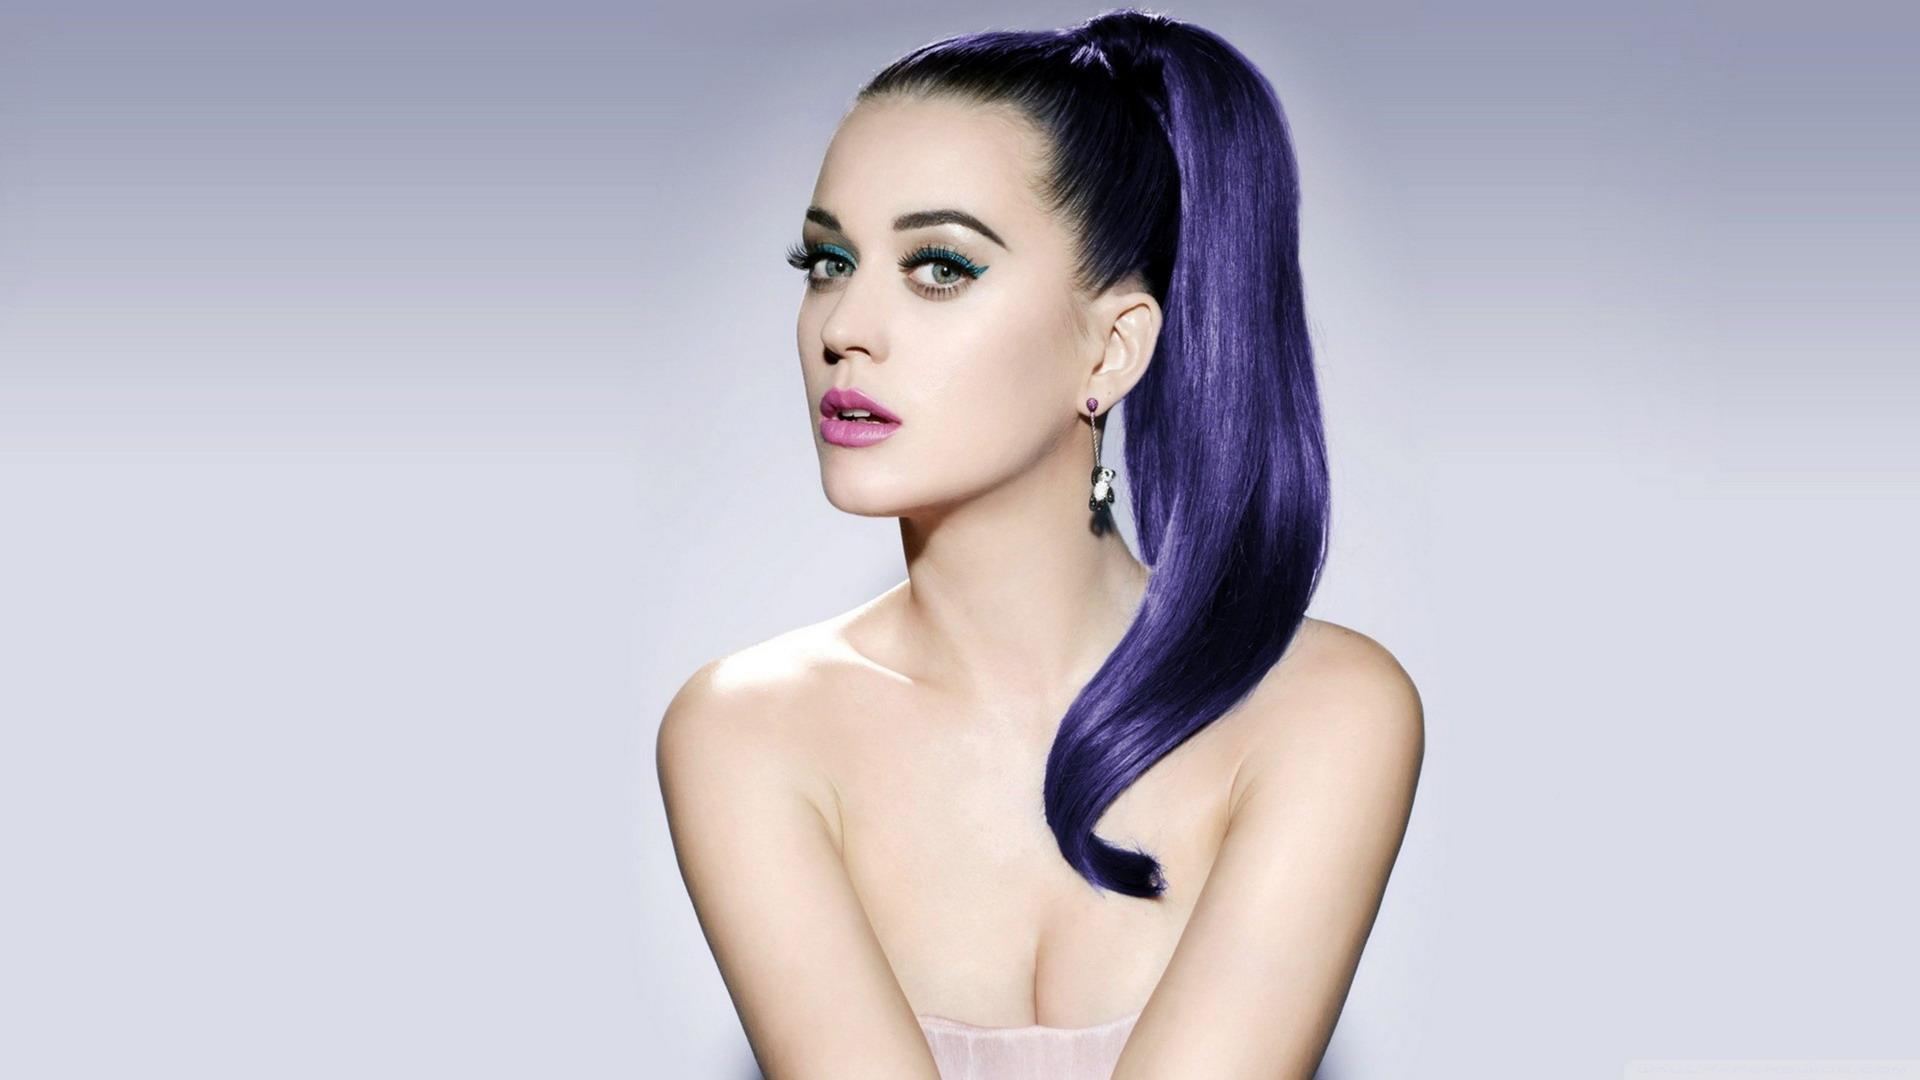 Katy Perry 2013 Wallpaper 229281